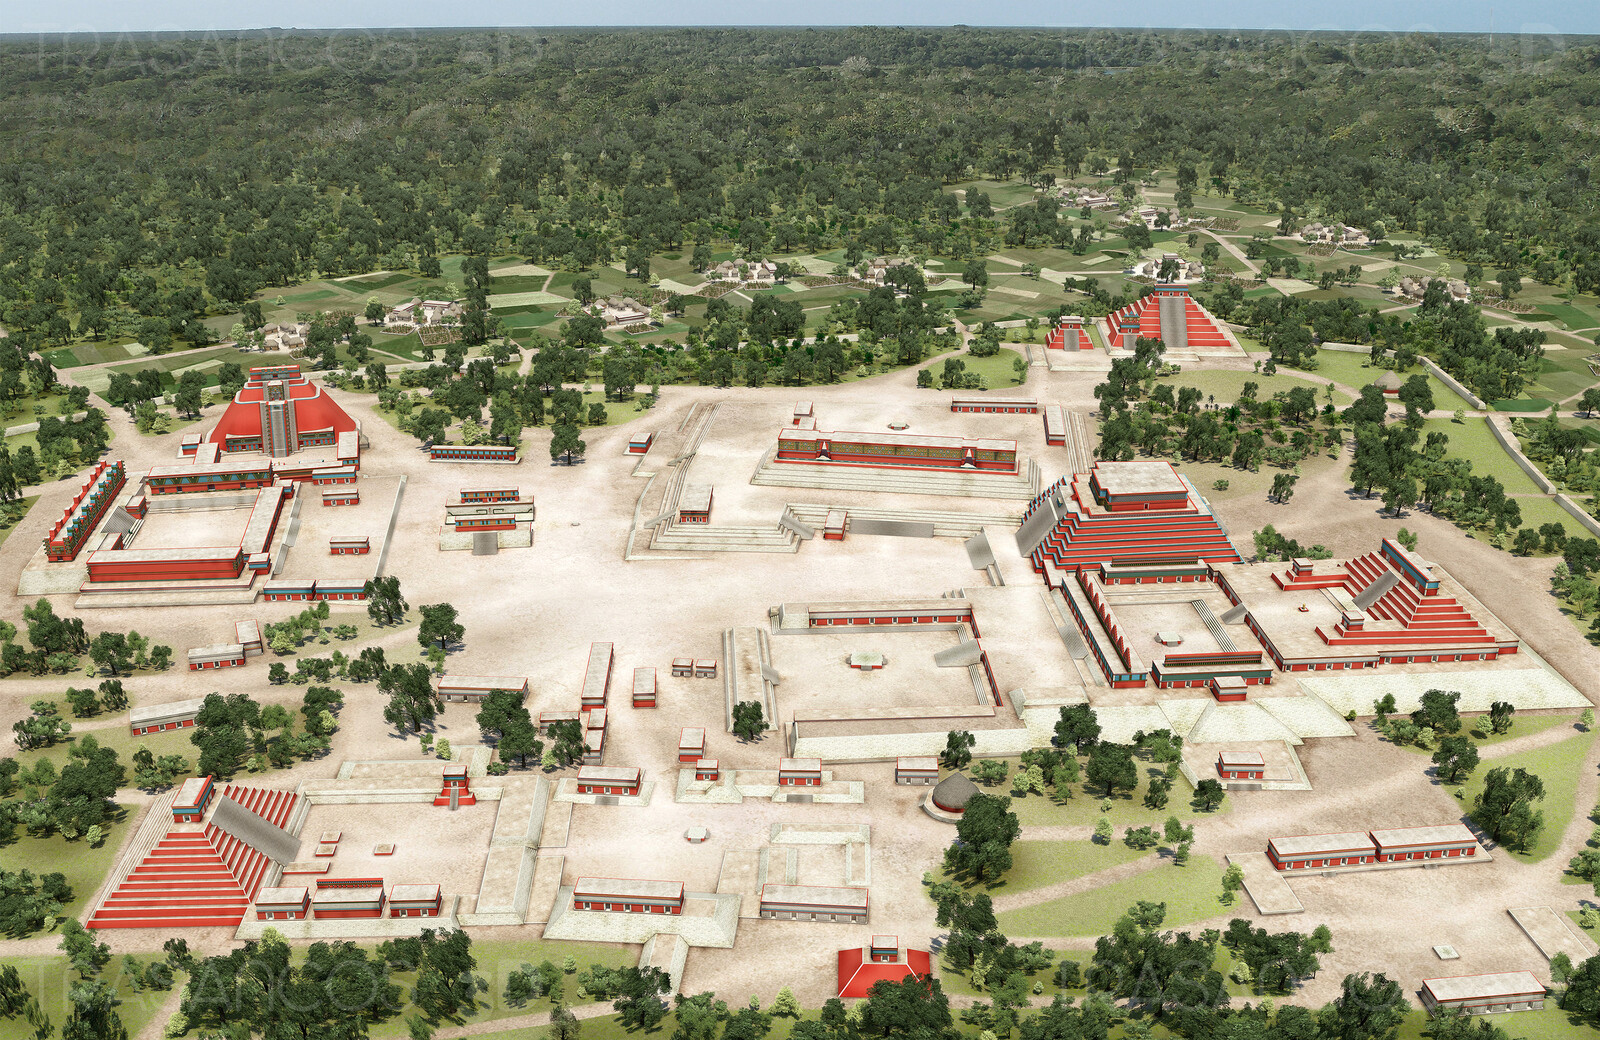 Panoramic view of the reconstructed mayan city of Uxmal. Modeled in collaboration with: - Andrés Armesto - Alejandro Soriano - Carlos Paz - Diego Blanco